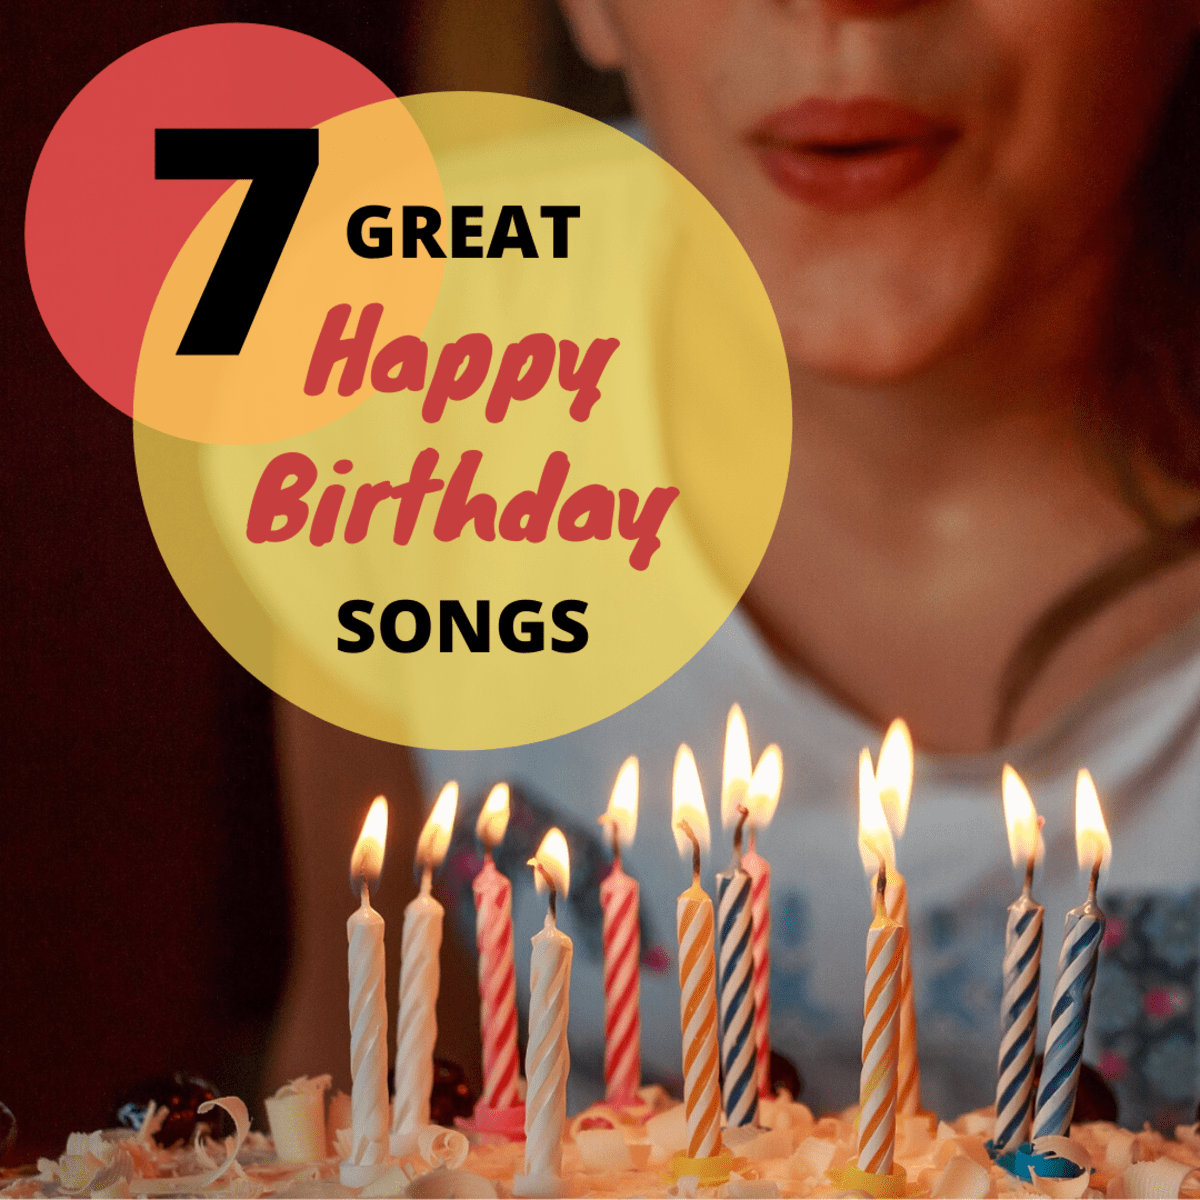 7 Of The Best Happy Birthday Songs Traditional And Funny Holidappy Celebrations